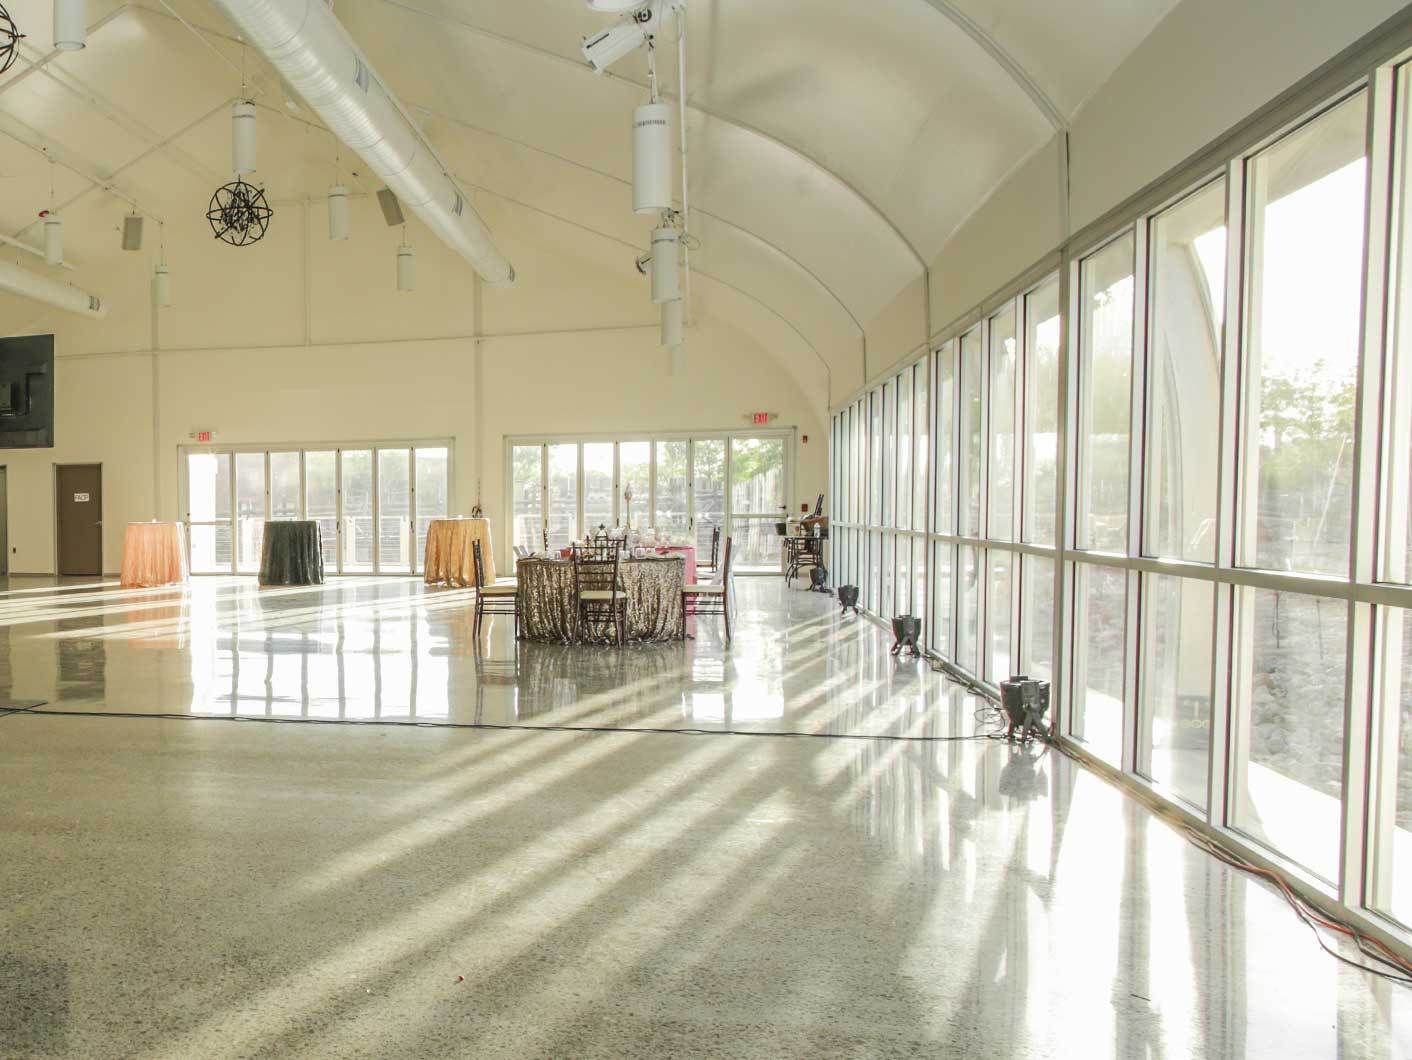 Glazing Walls Brings Lots Of Natural Light Into The Front Lobby